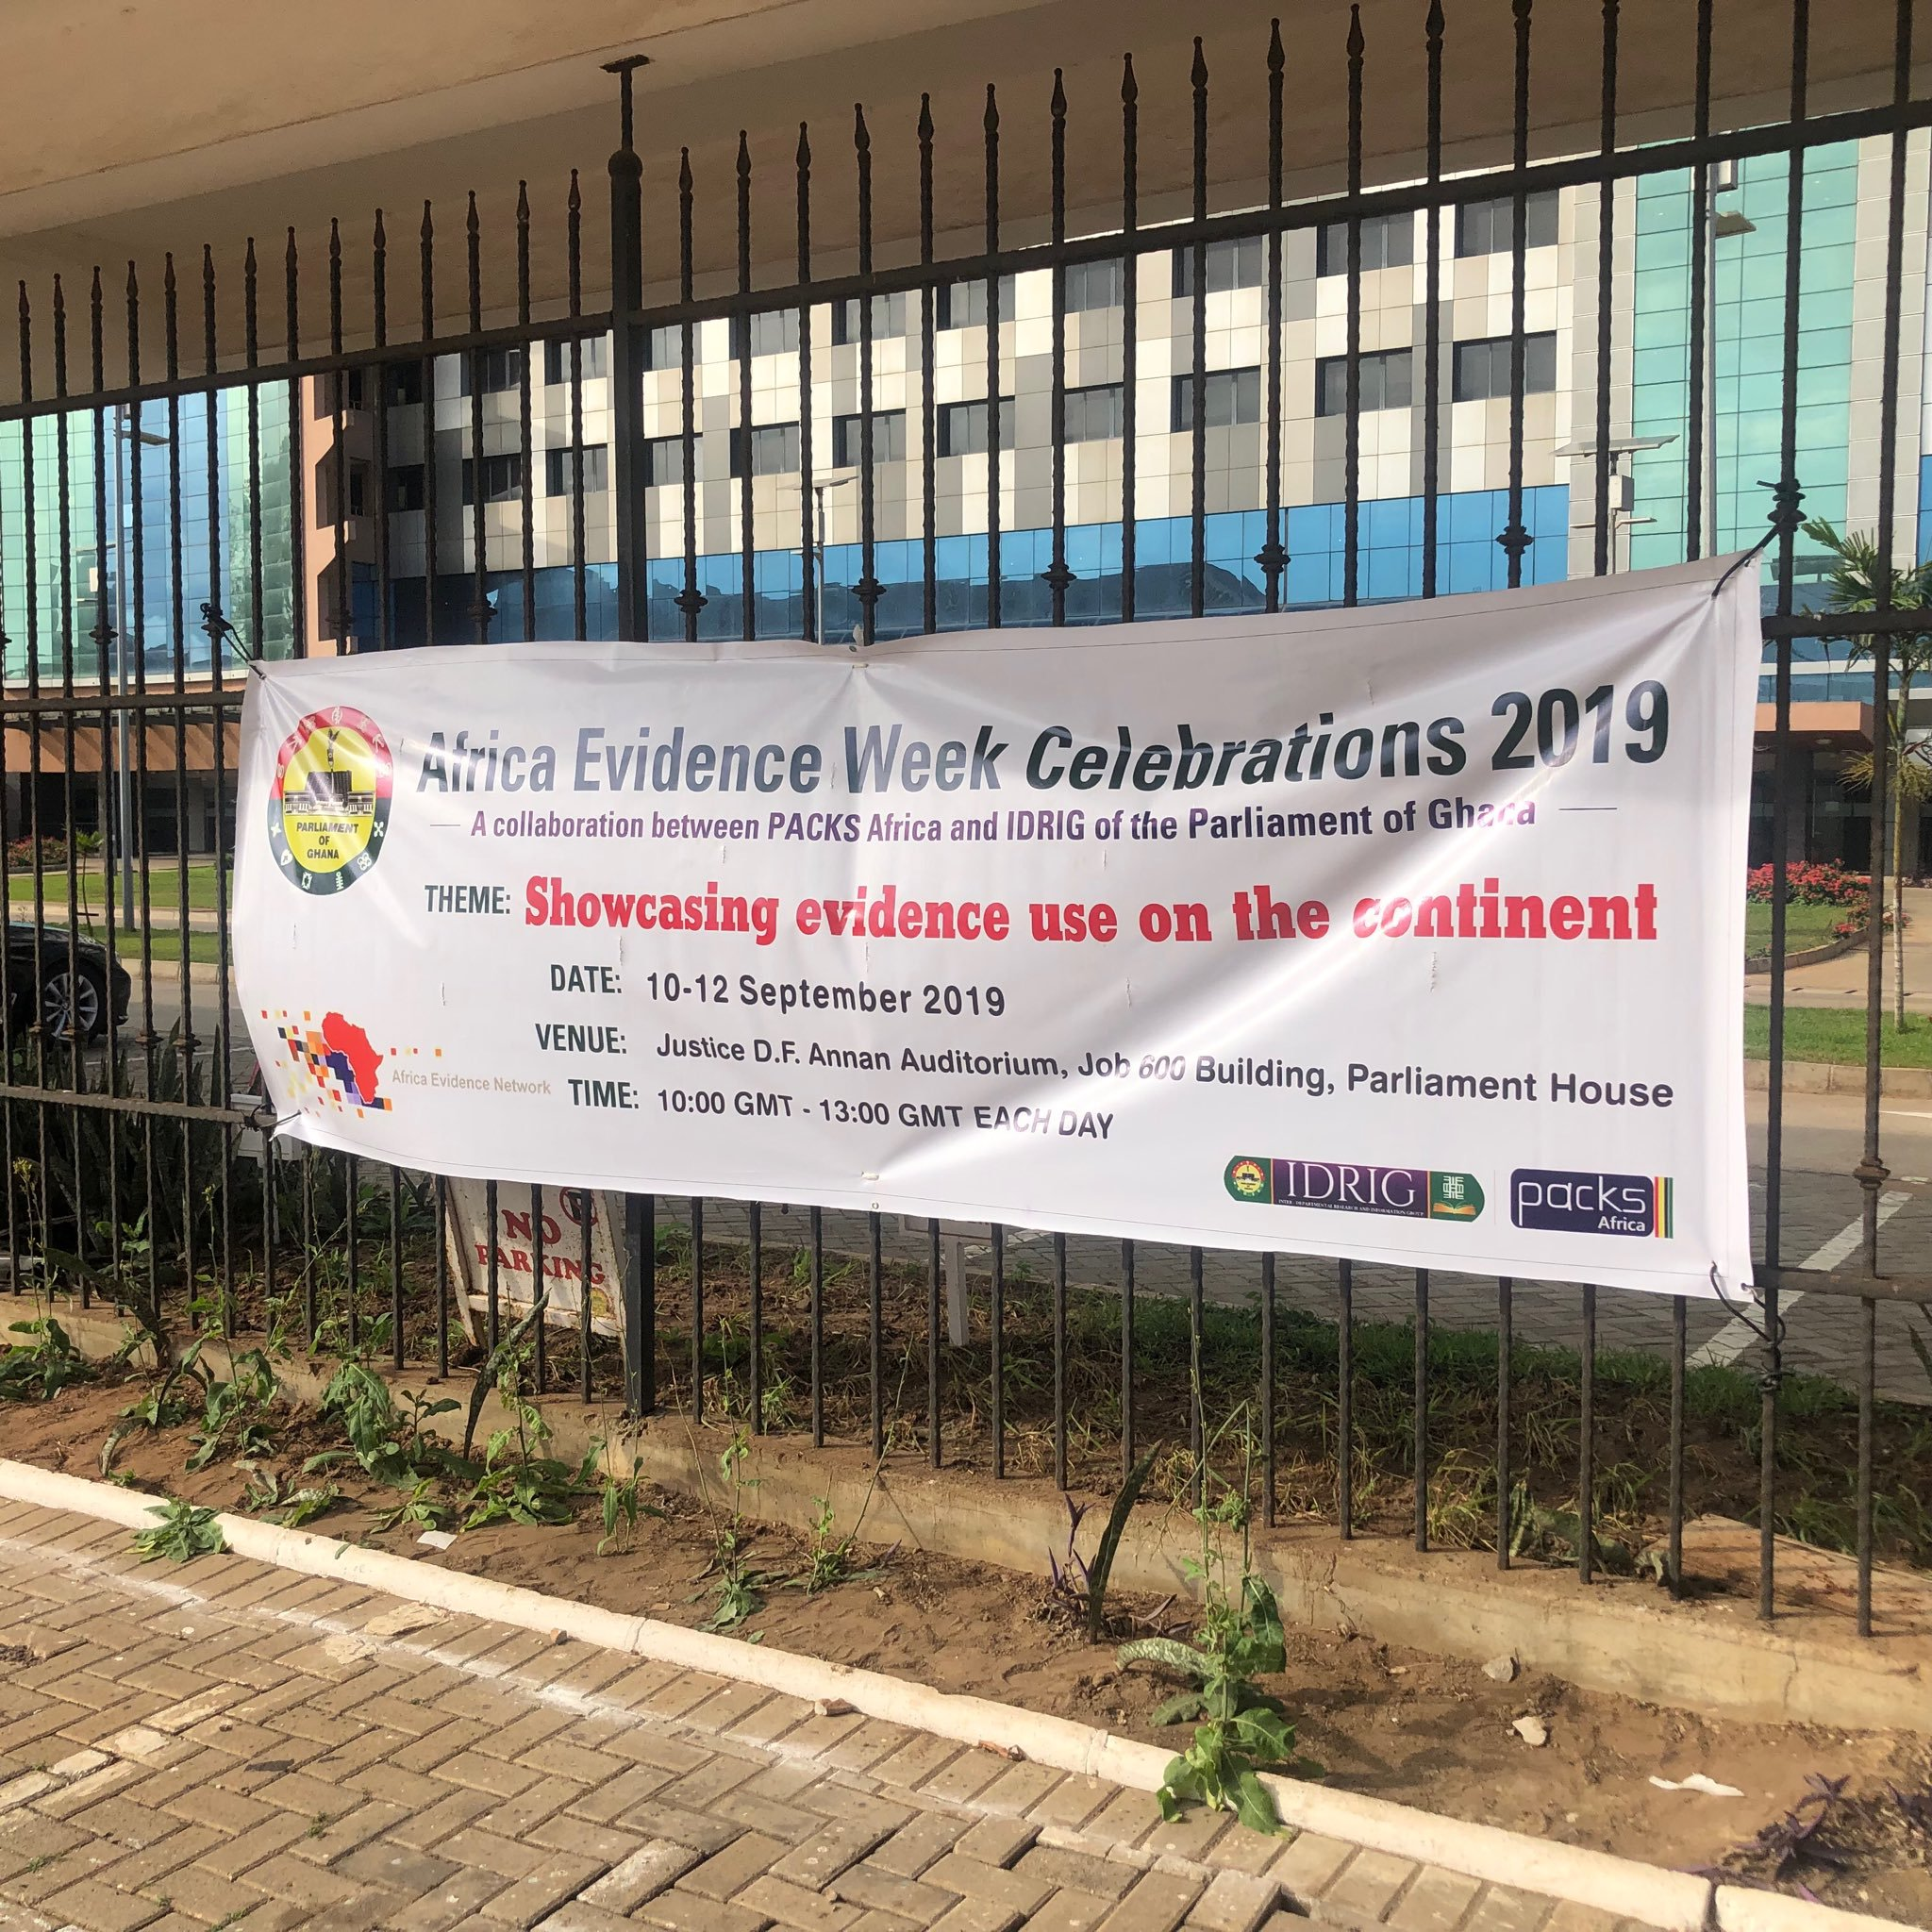 The #AfricaEvidenceWeek: What's happening in Ghana?